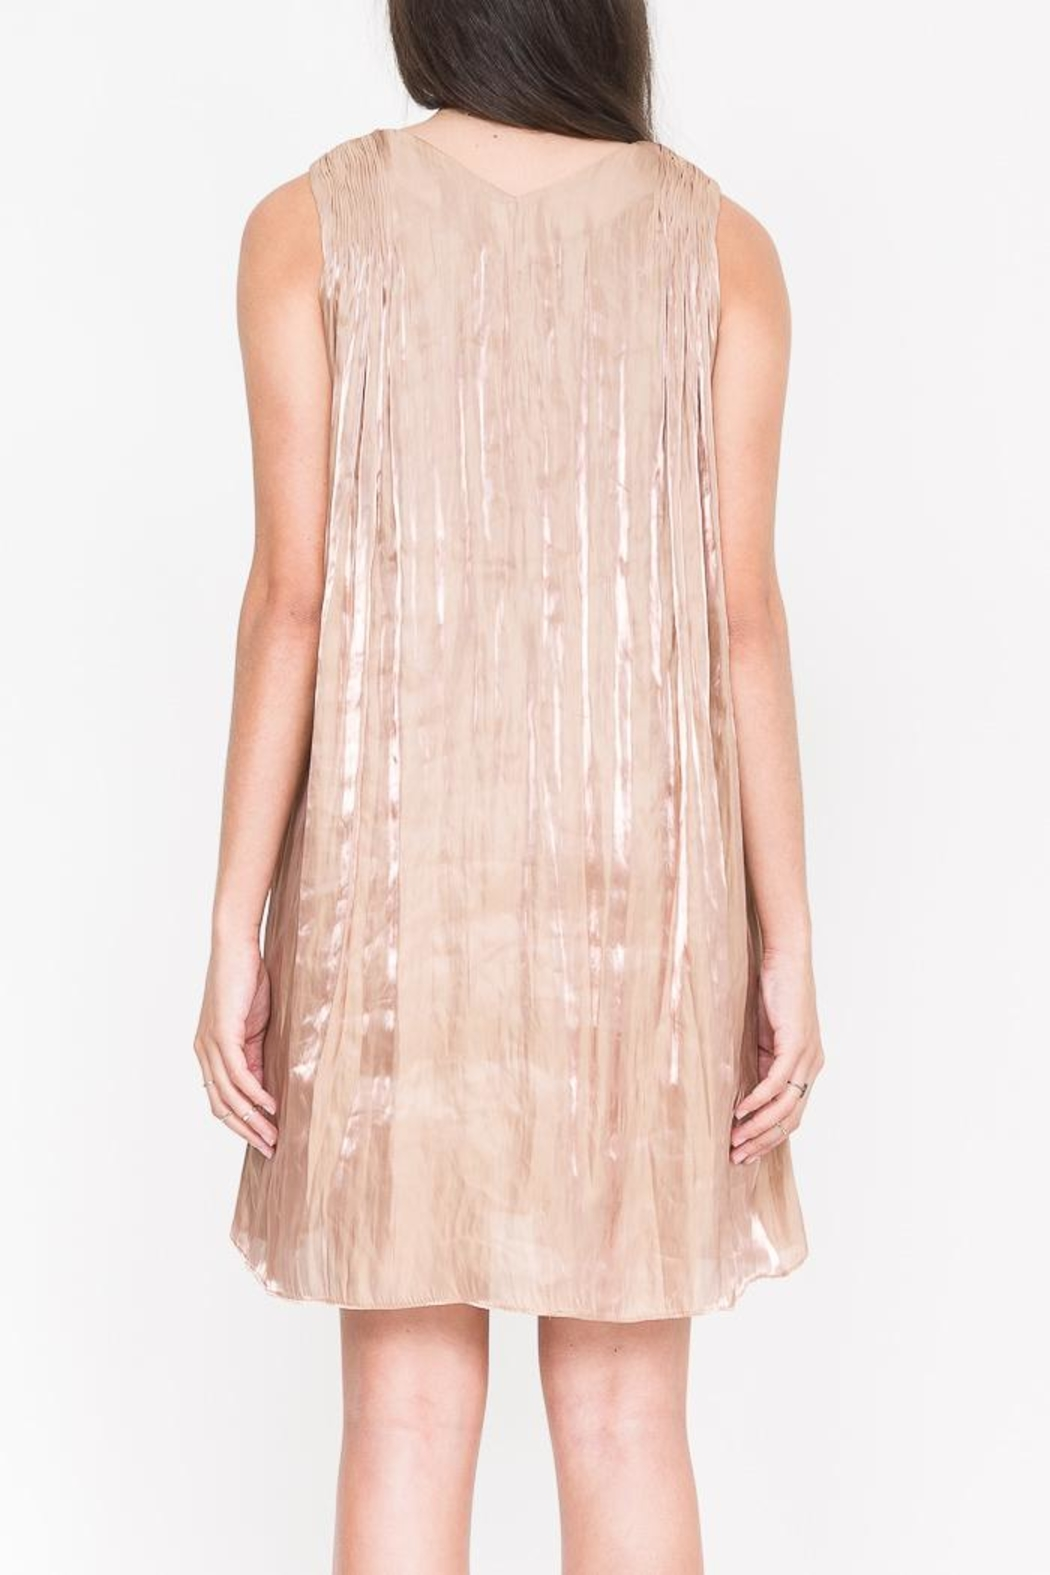 QUINN Geneva Pleated Dress - Side Cropped Image